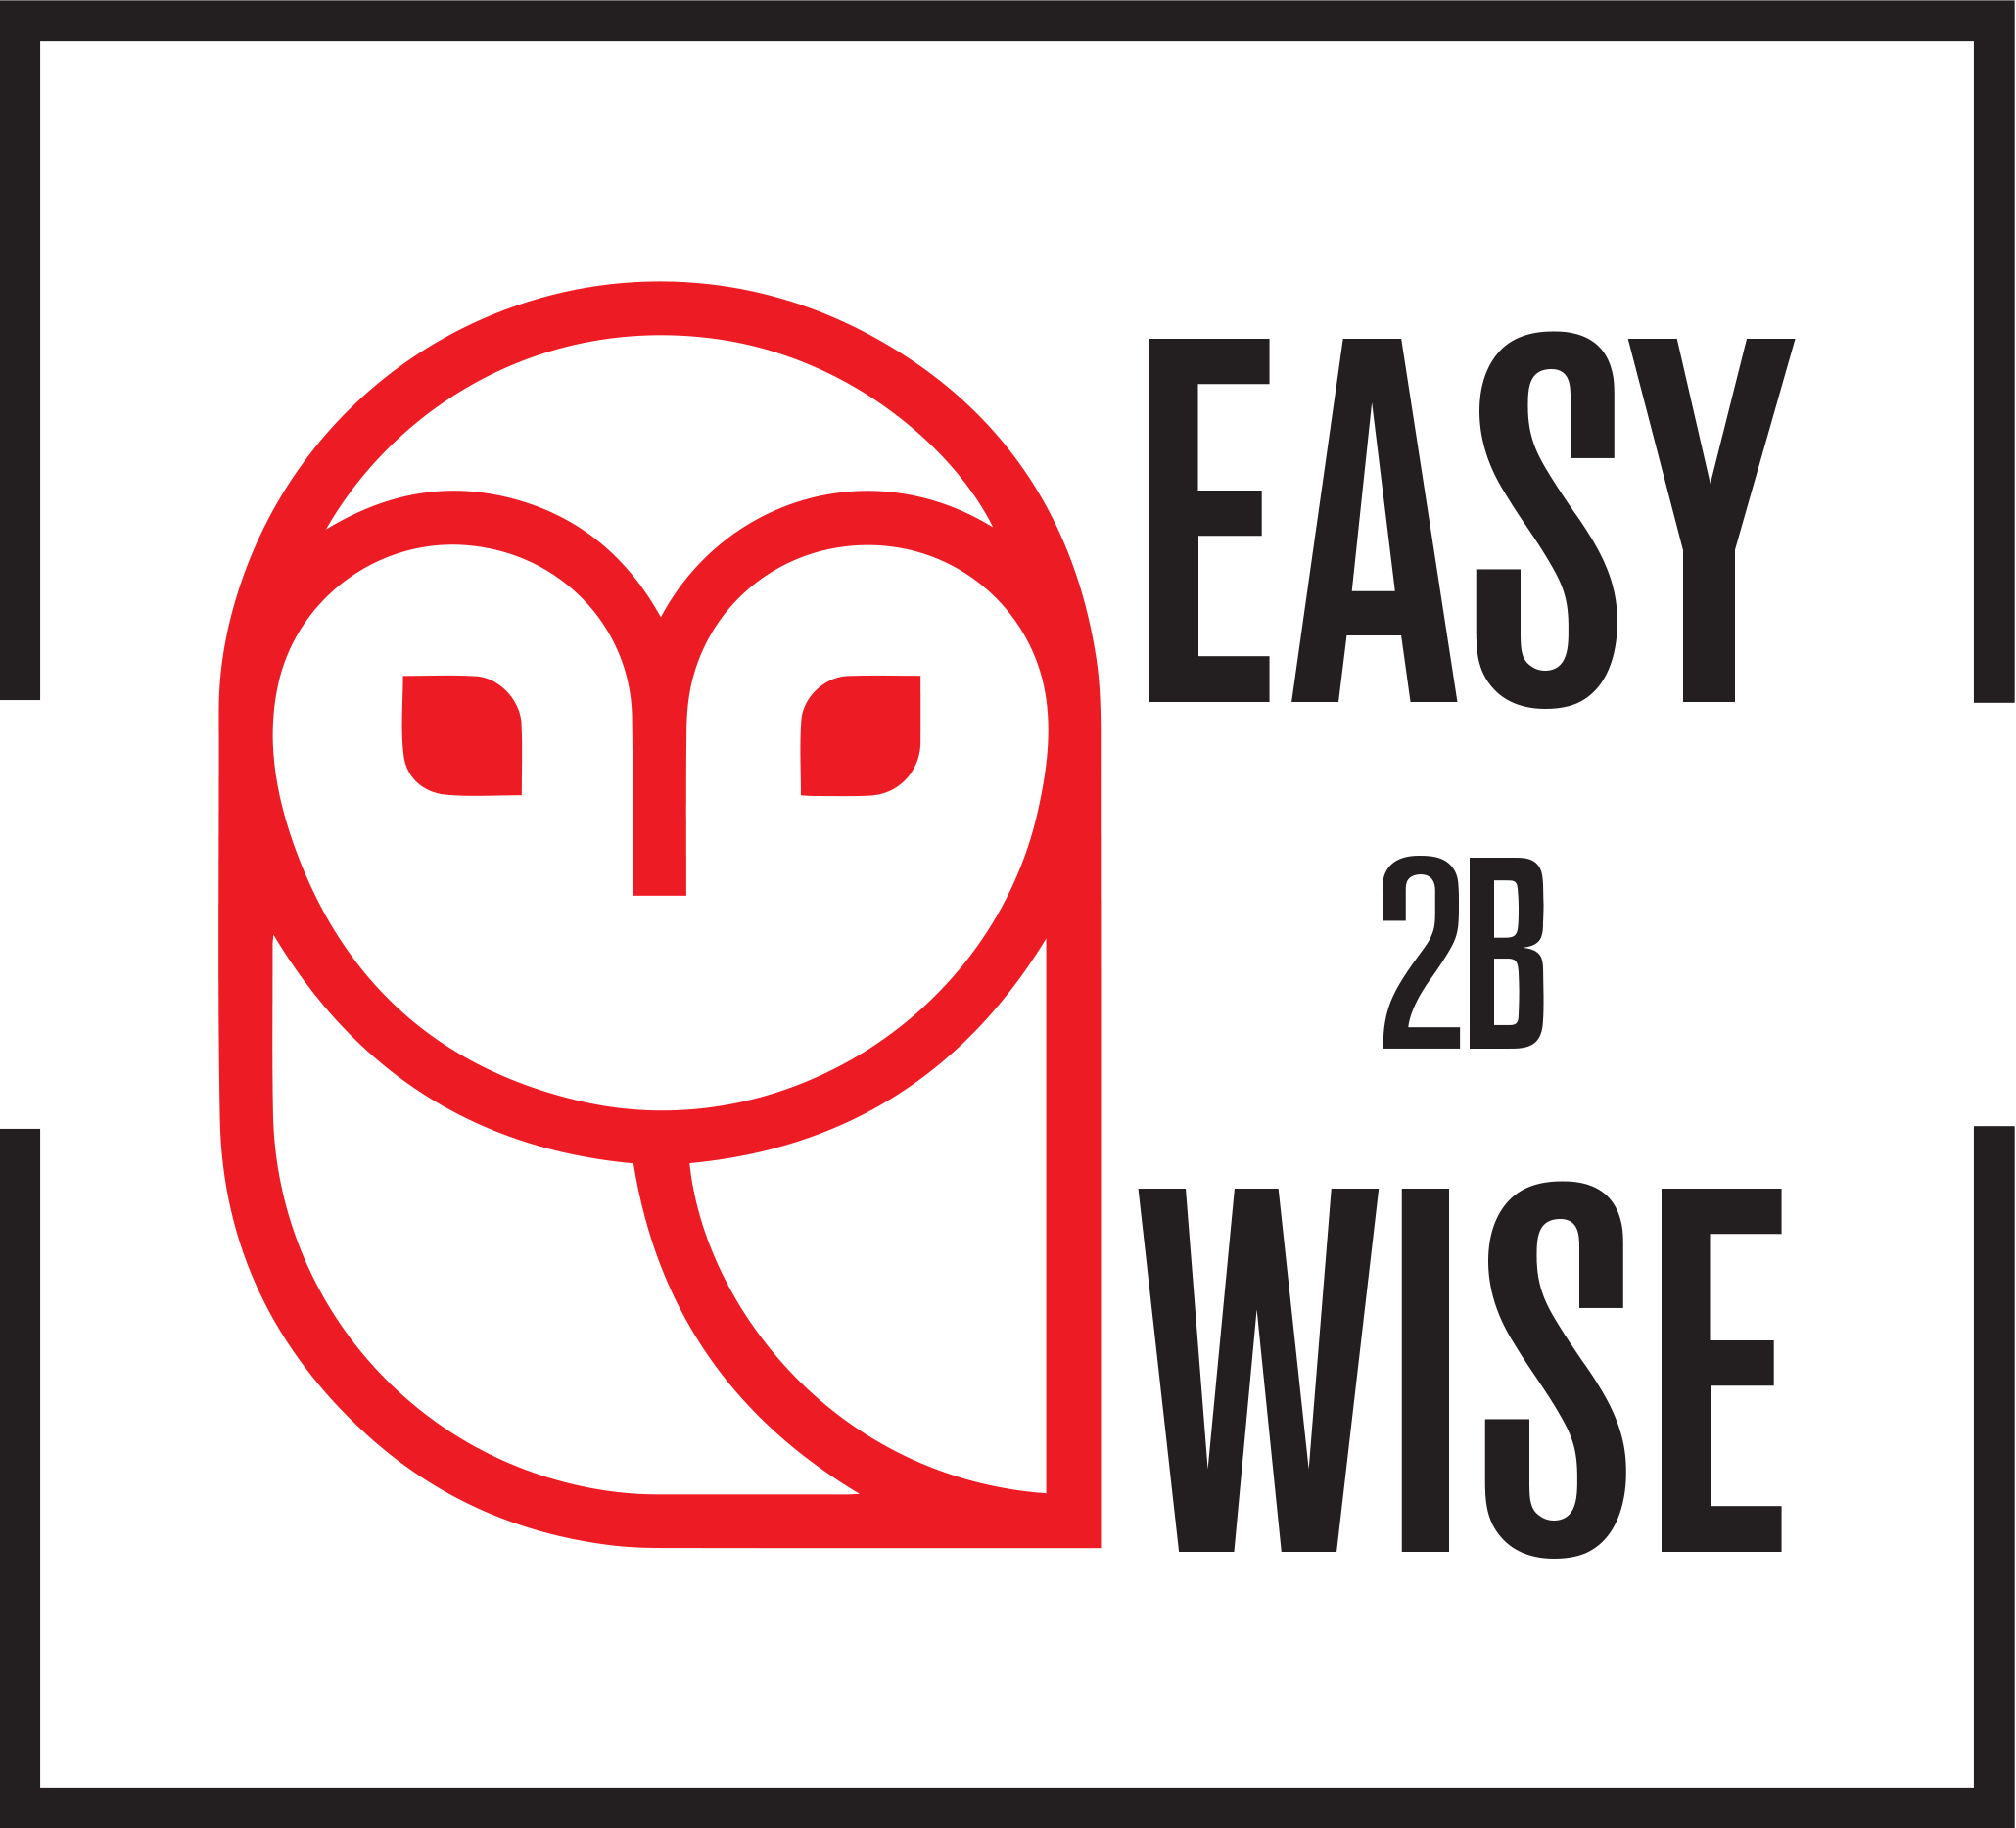 Easy2bwise